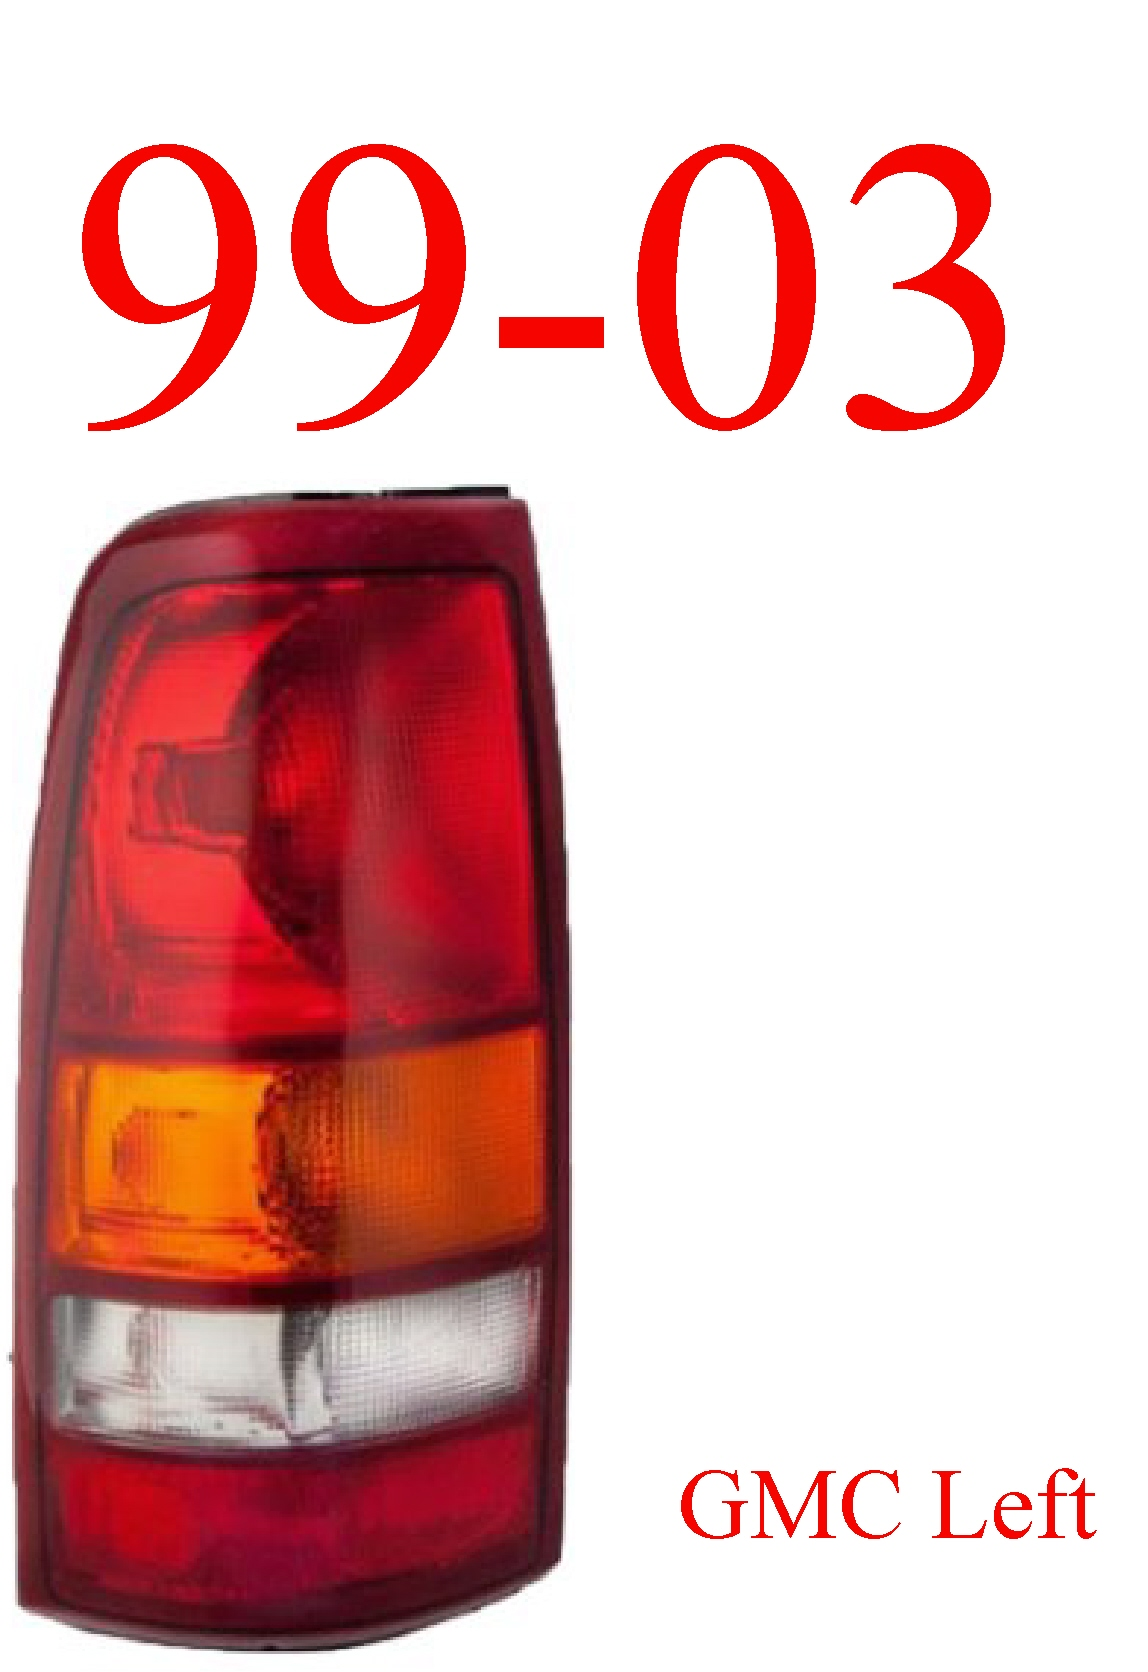 99-03 GMC Truck Left Tail Light Assembly